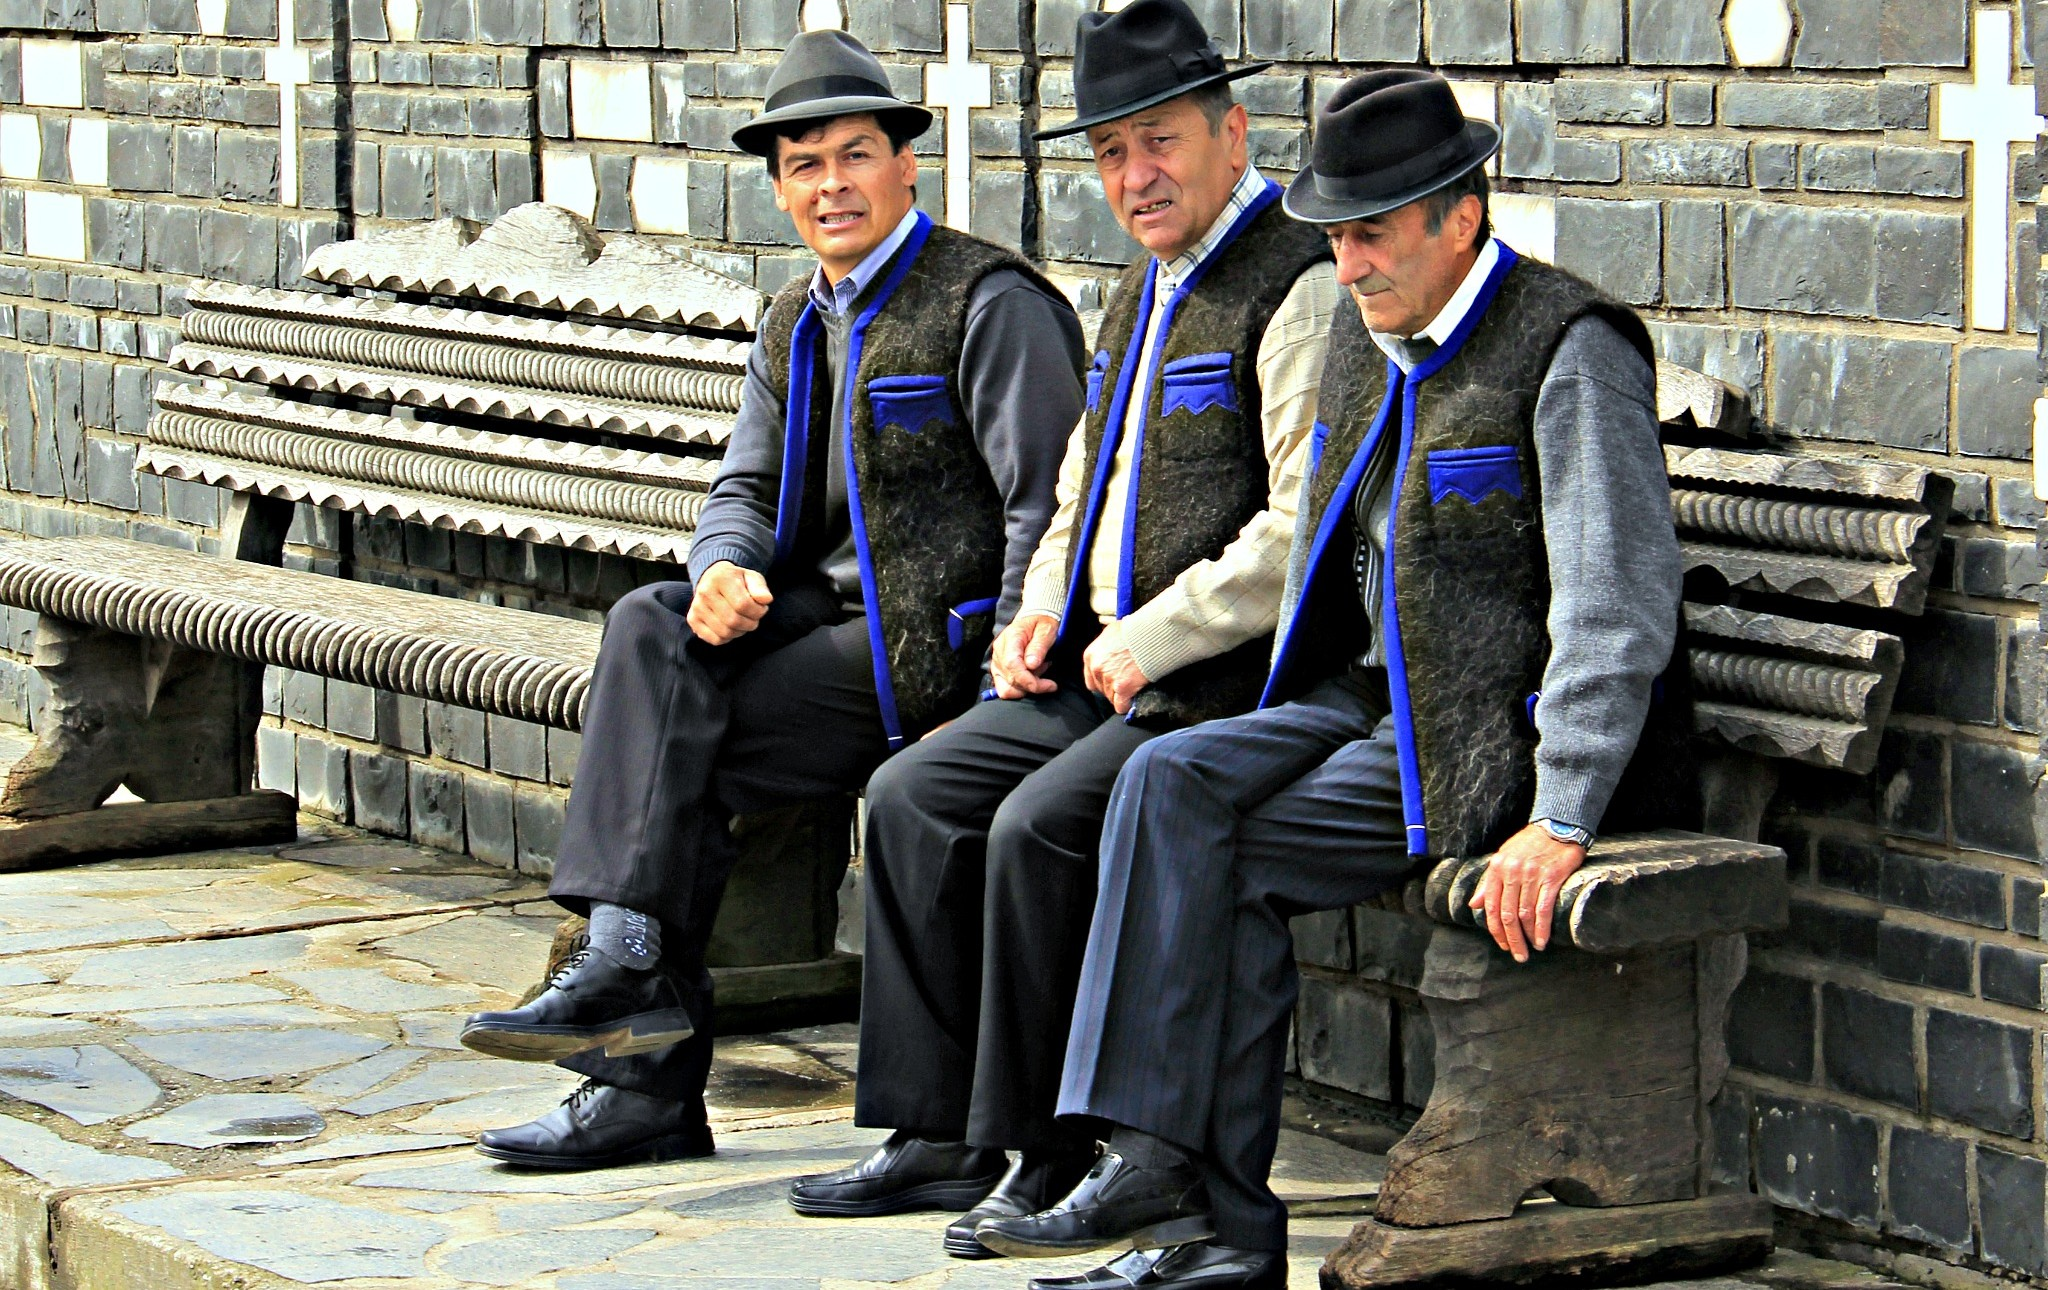 Men relaxing at the entrance in the cemetery. Photo by Ovidiu Balaj